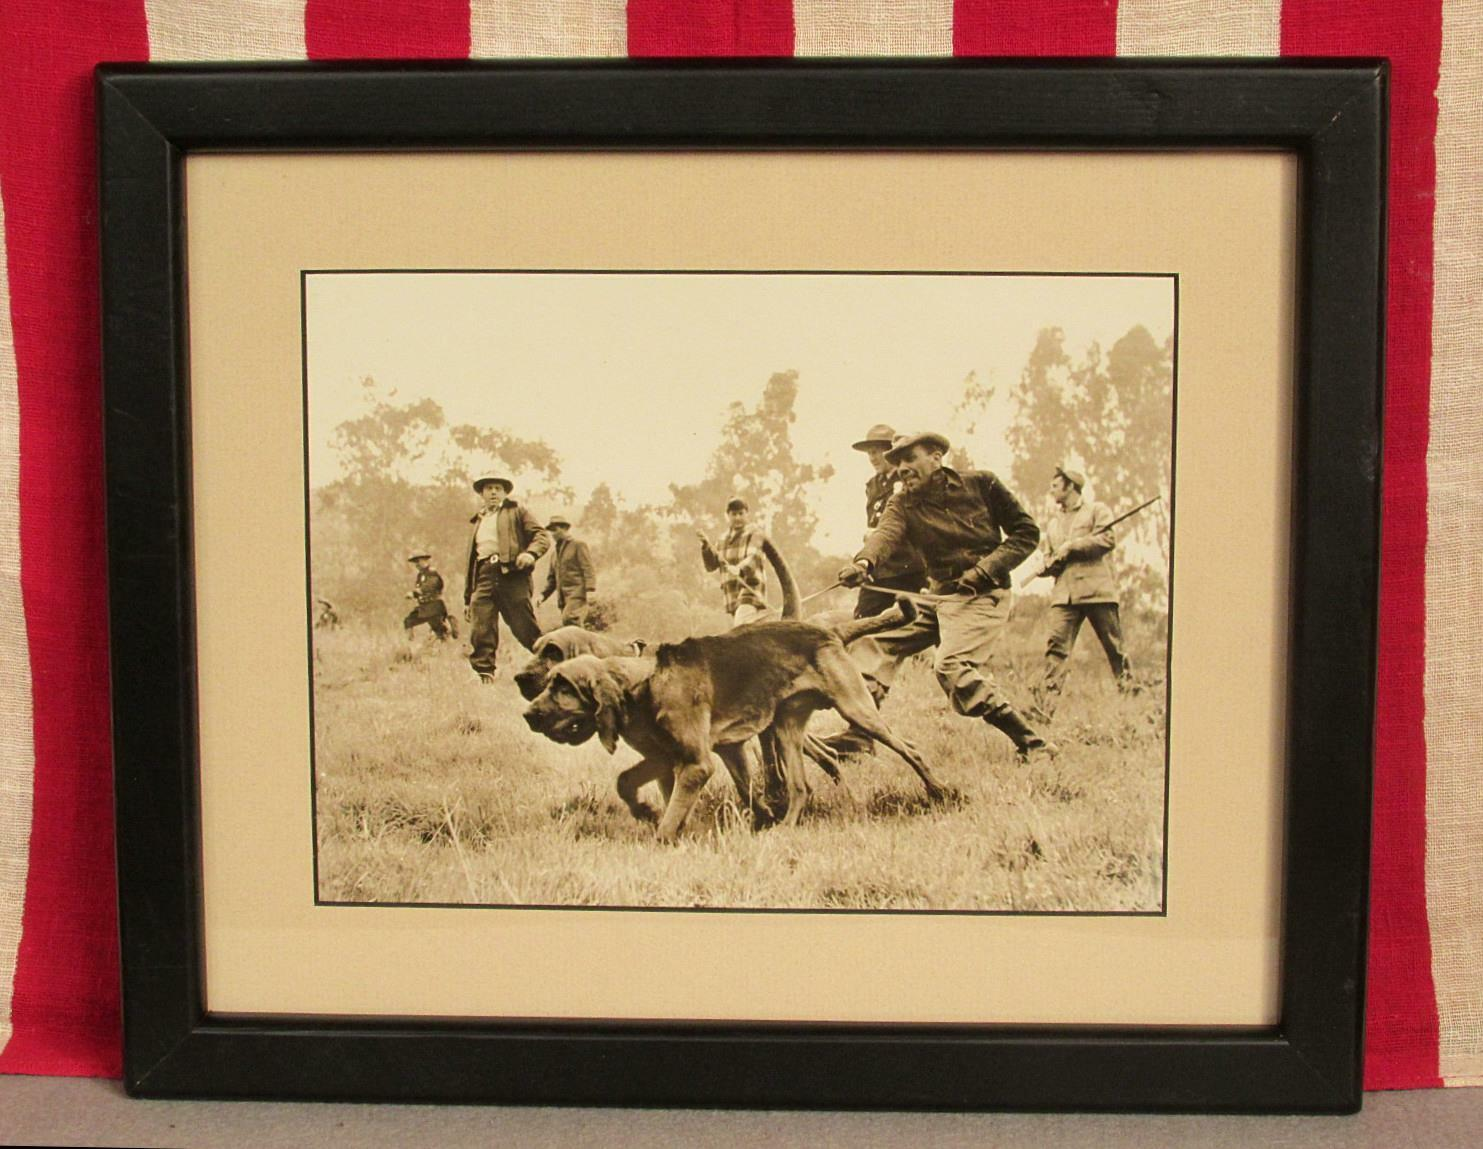 Vintage 1950s Hunting Party with Sporting Dogs Photograph Print in Frame Nice